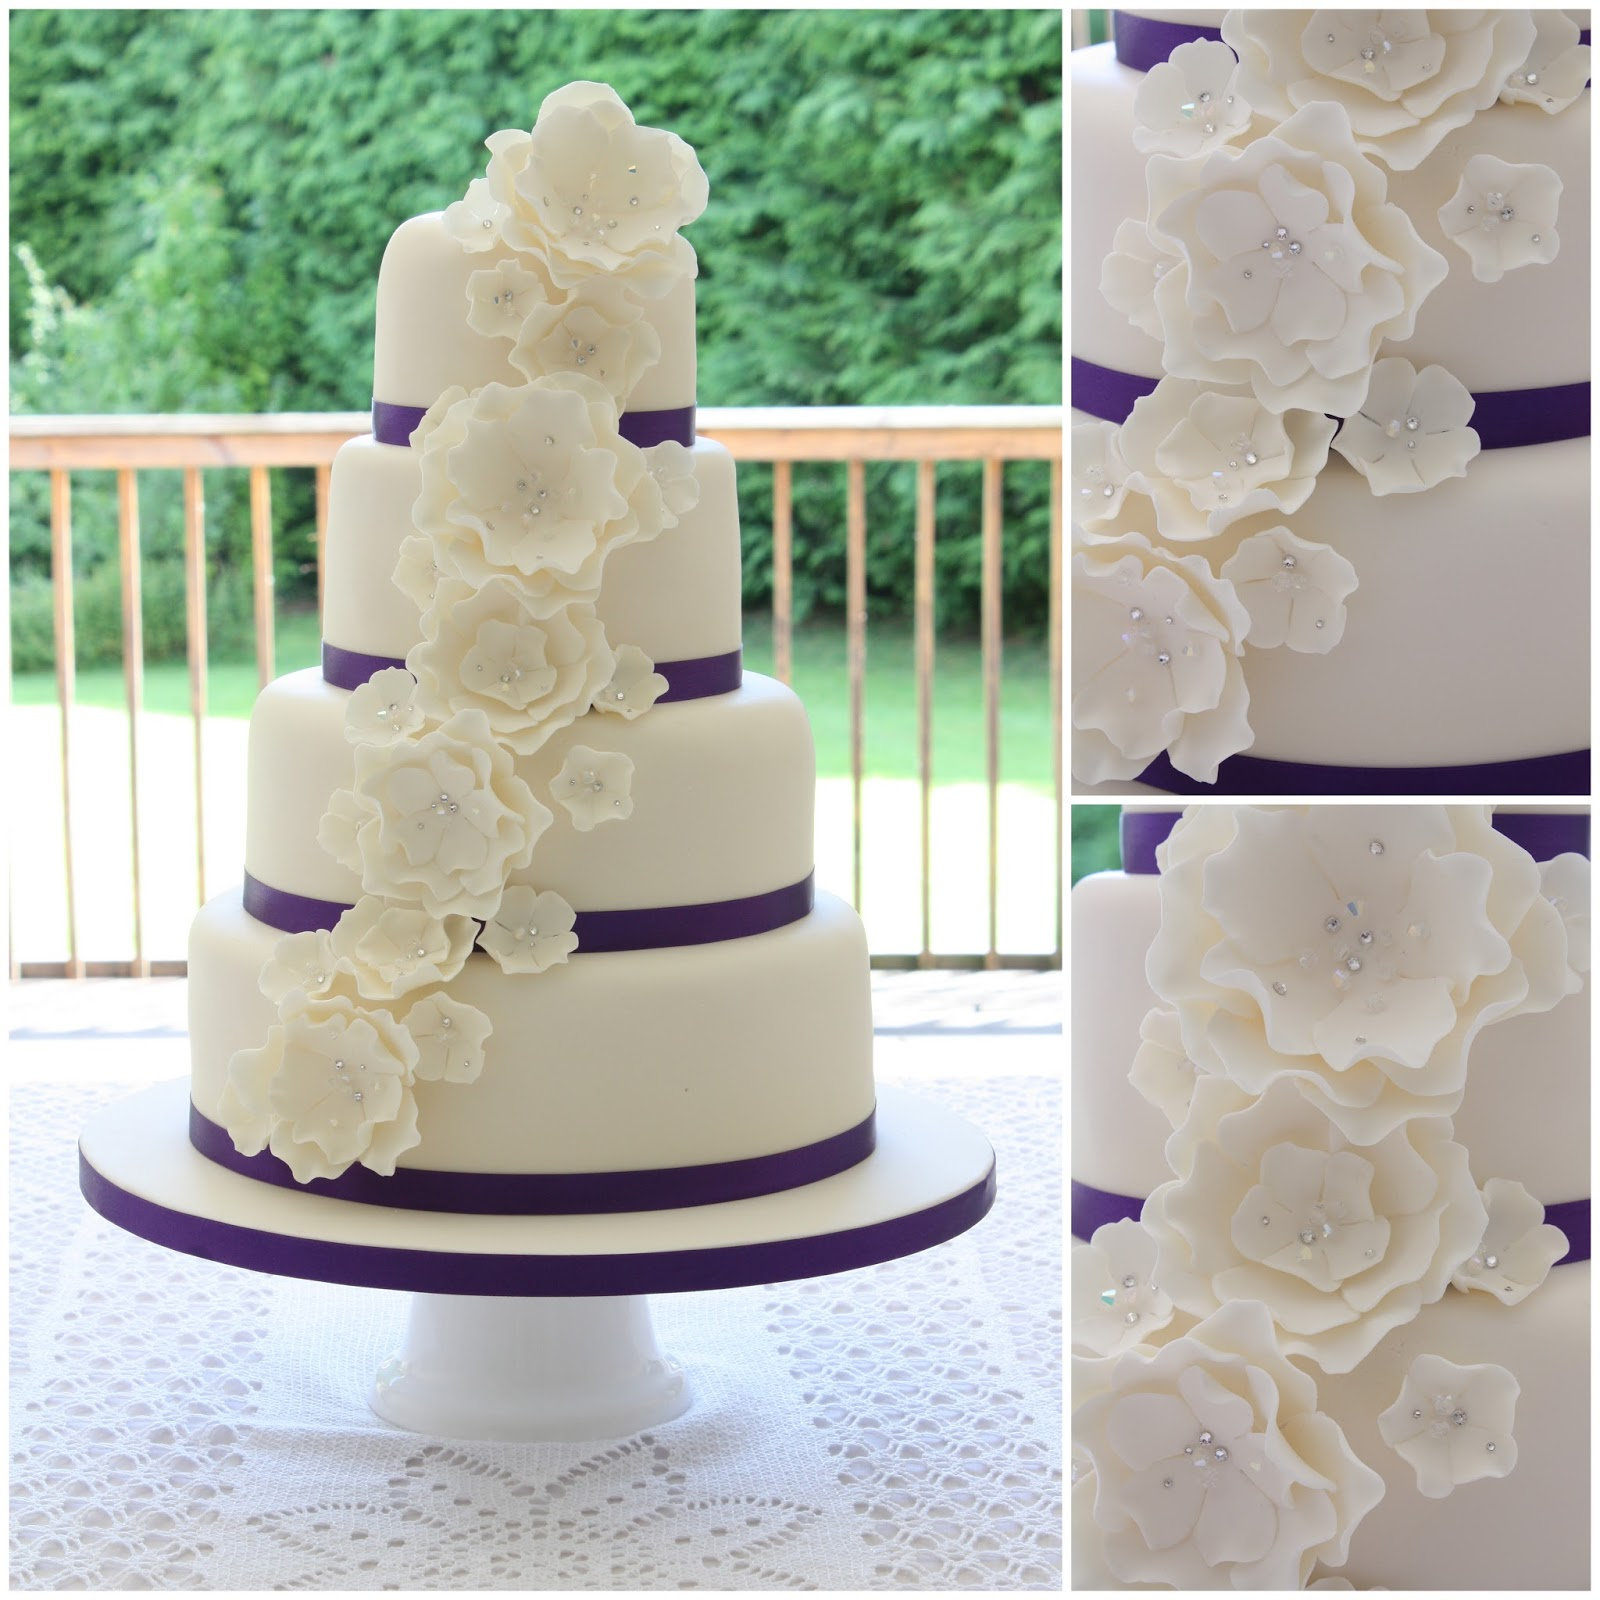 Wedding Flowers By Annette: Tiers & Tiaras: Floral Cascade Wedding Cake